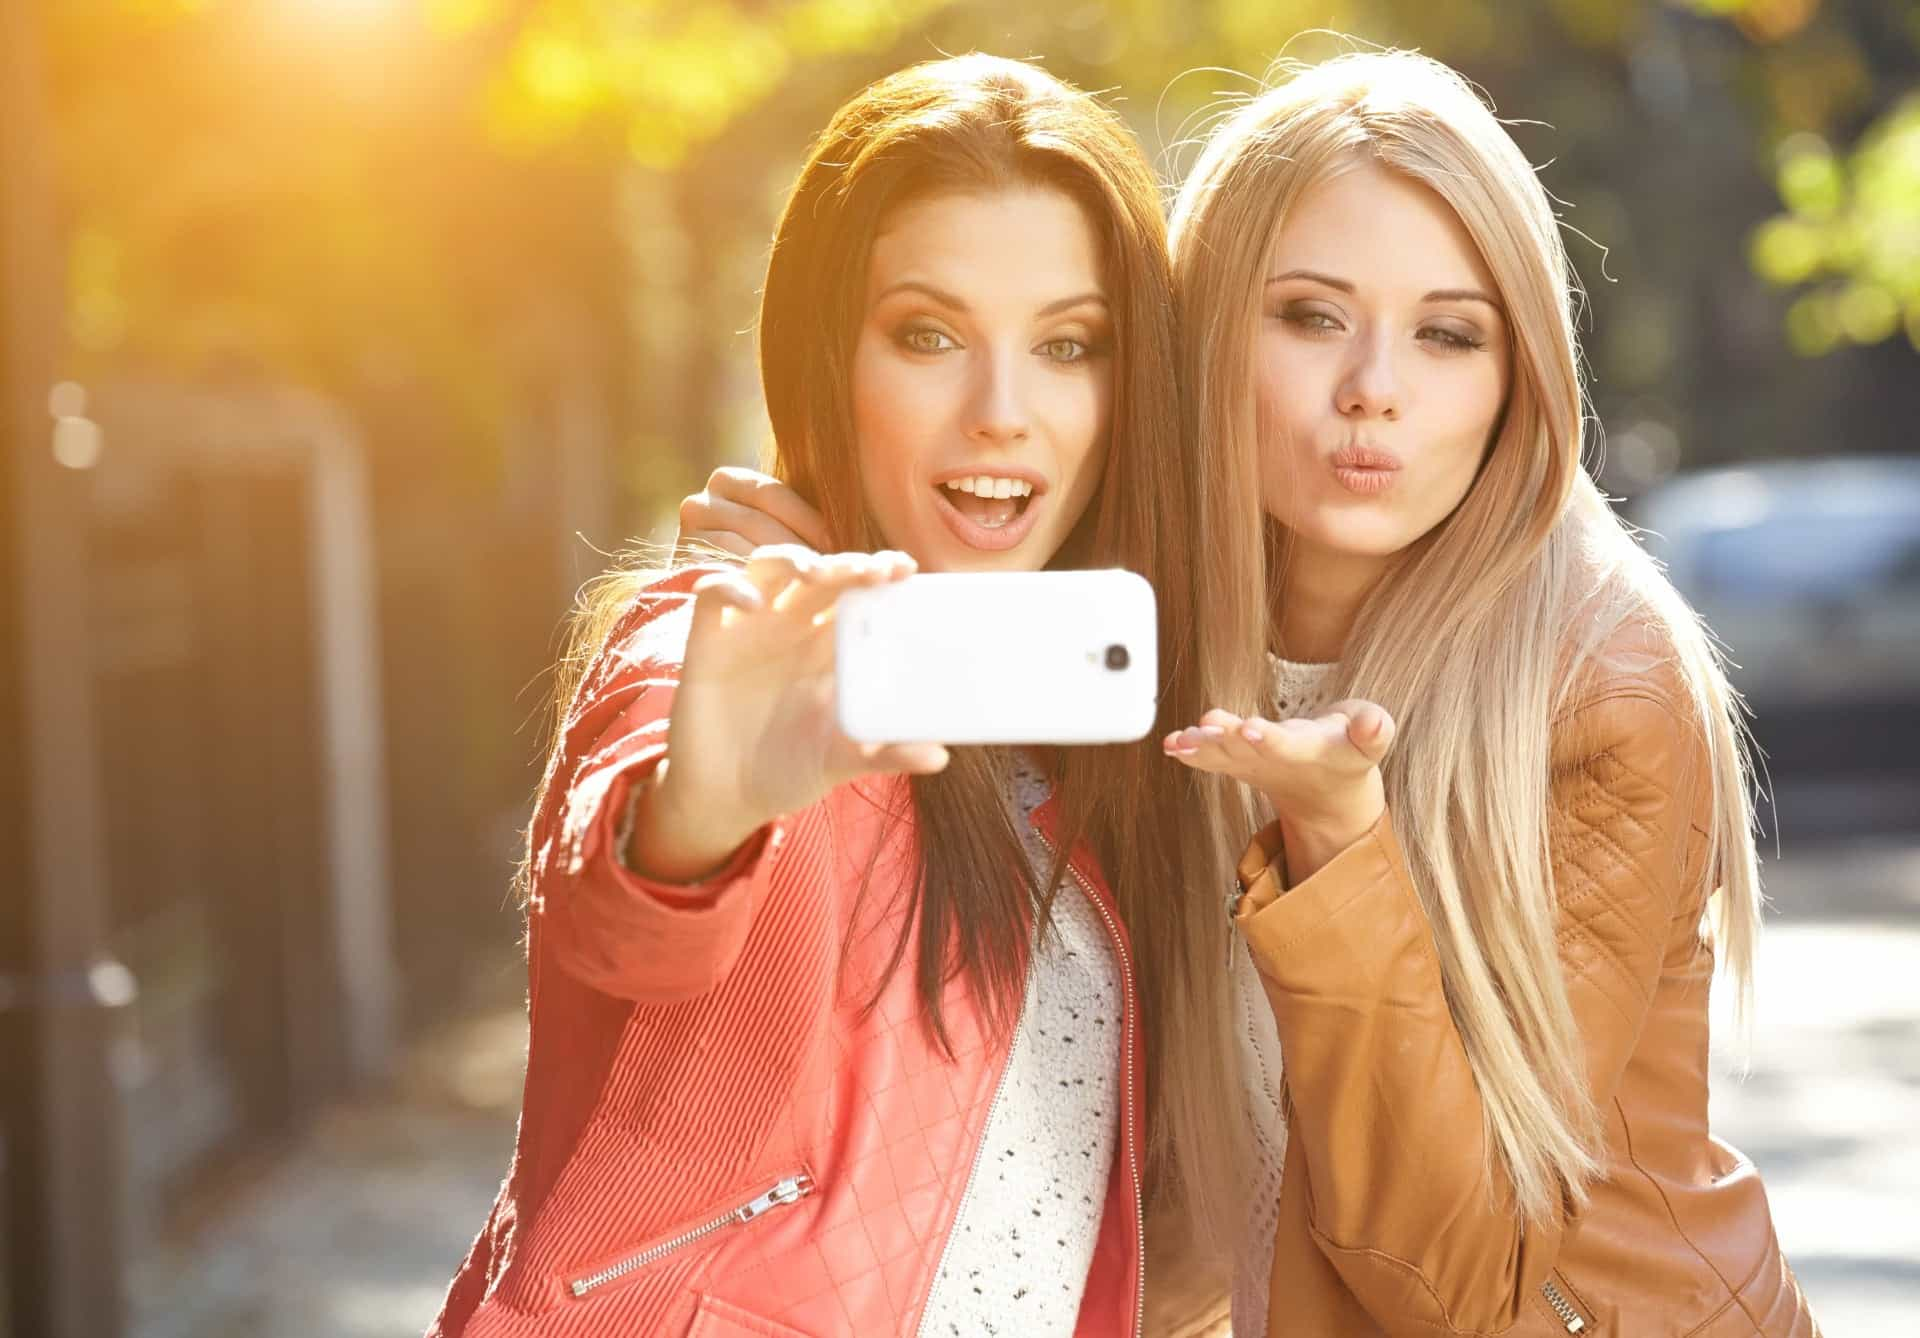 Girls-taking-a-selfie-before-their-online-date